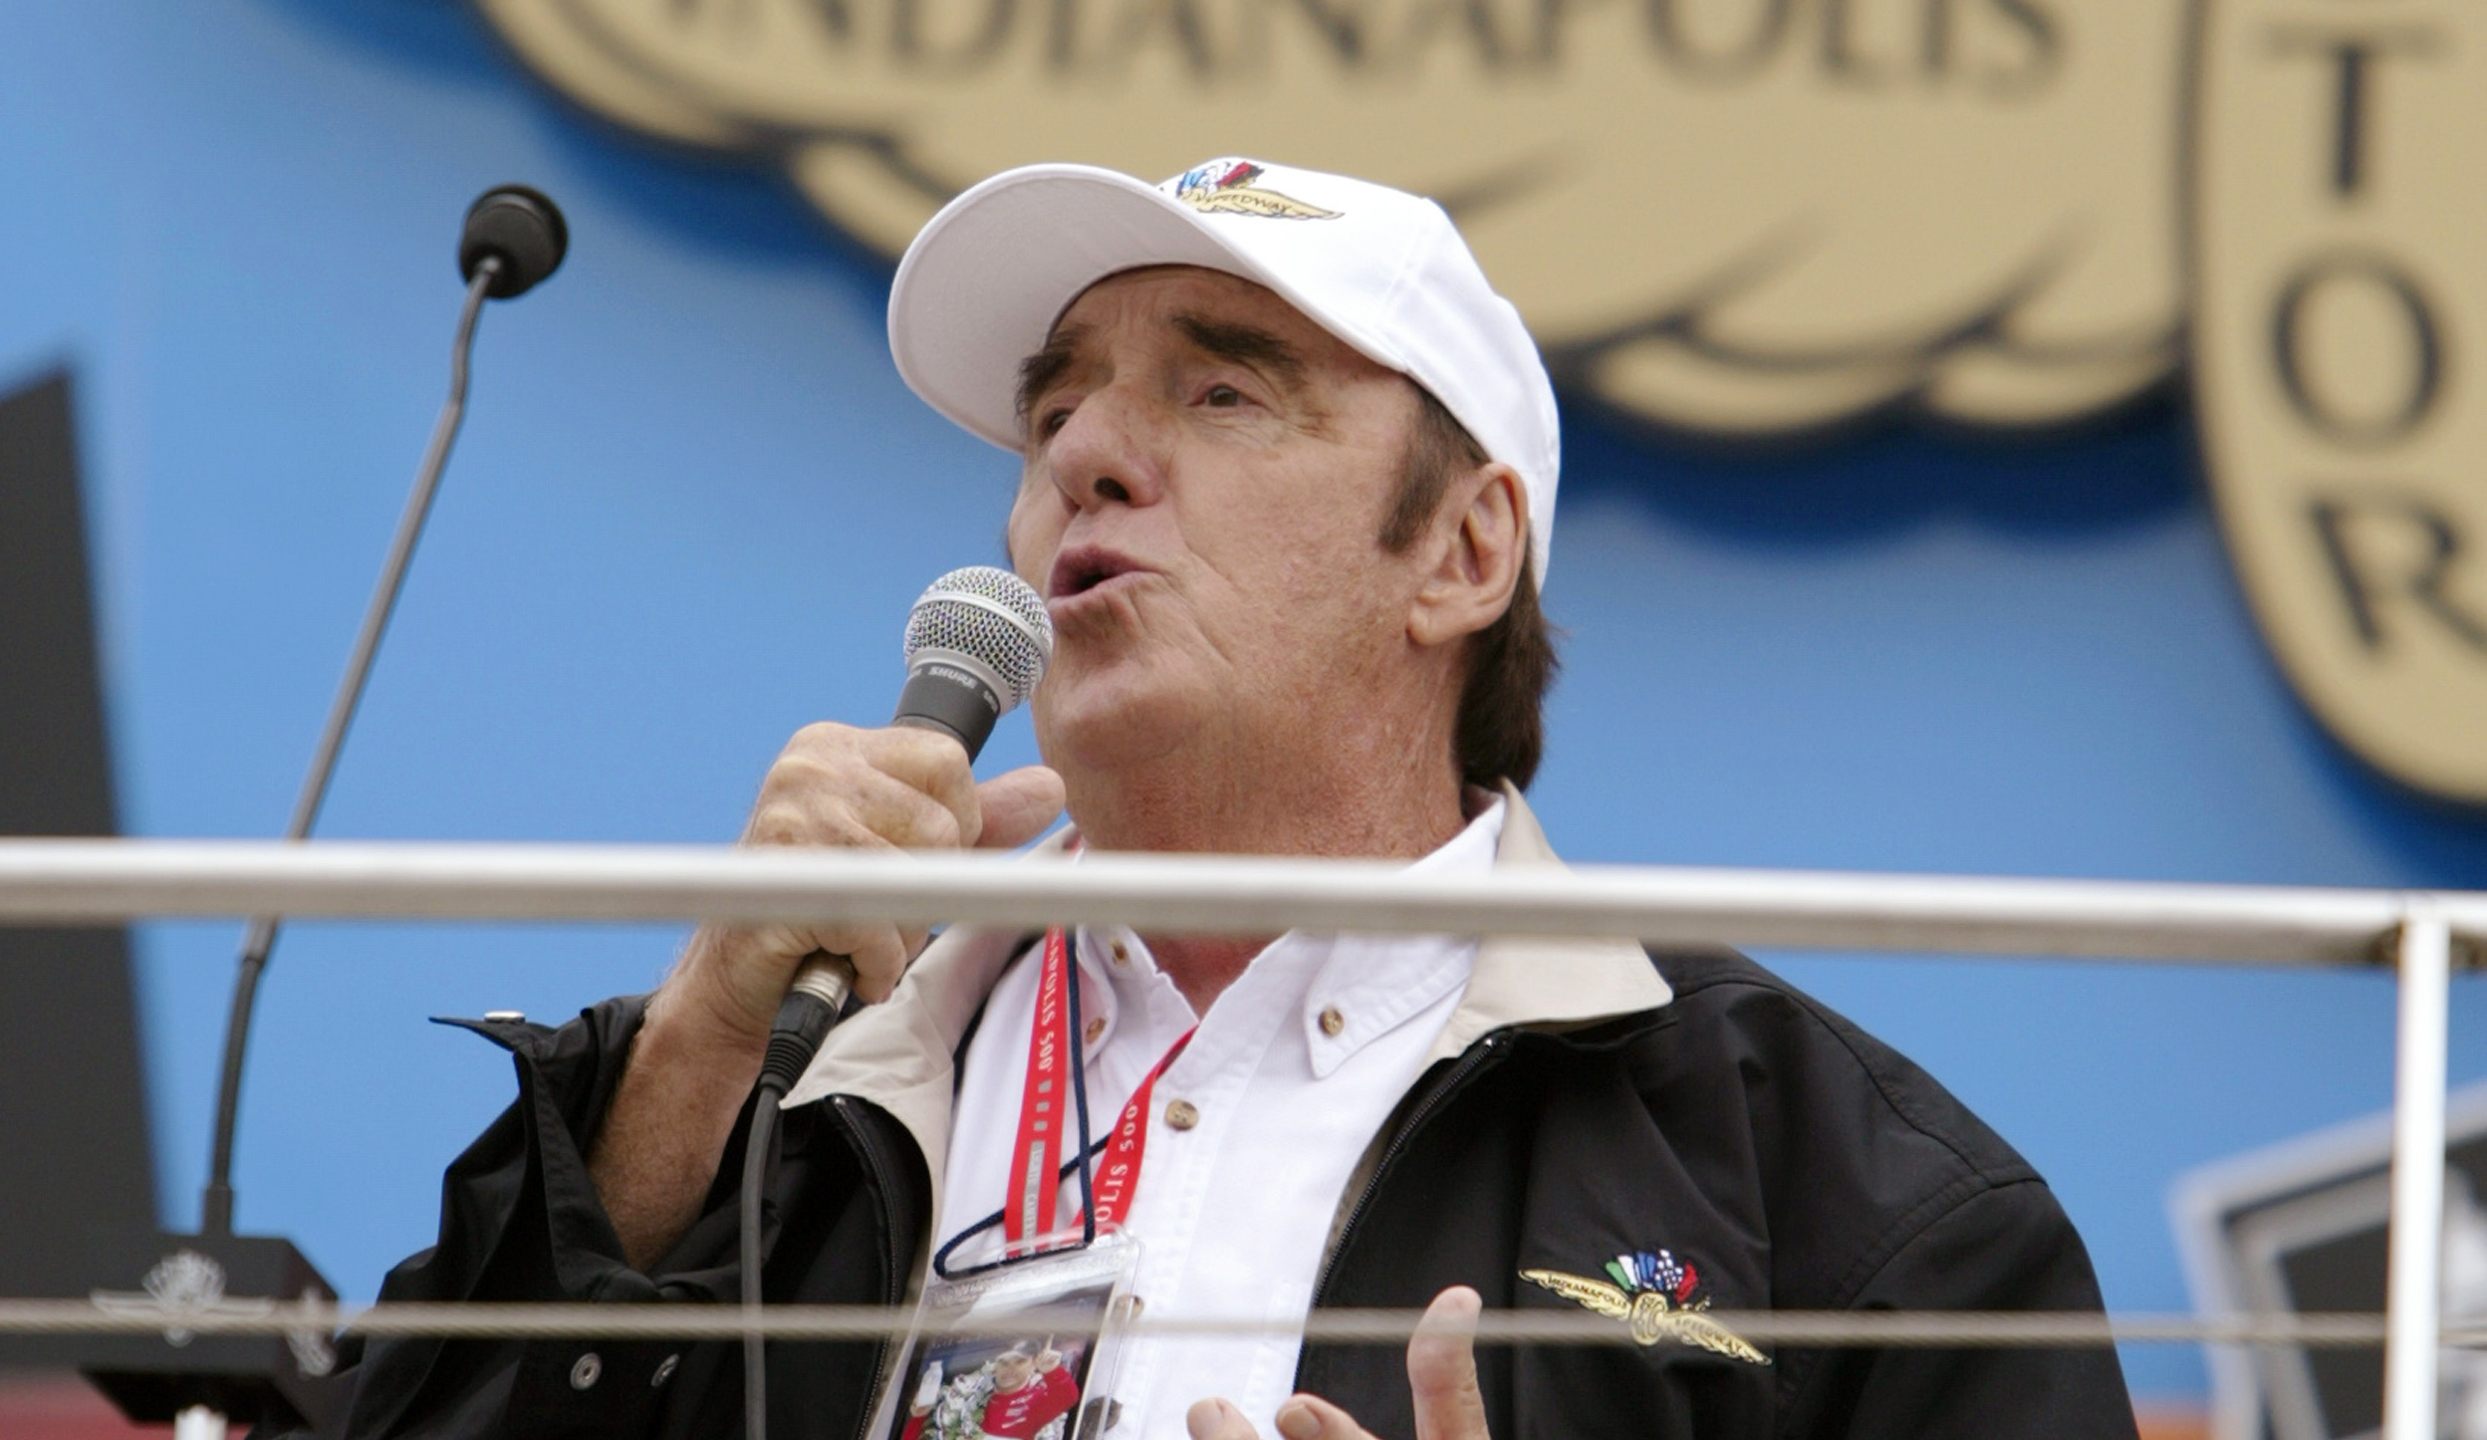 Jim Nabors Tv S Gomer Pyle Dies At 87 The two were married in seattle. 2